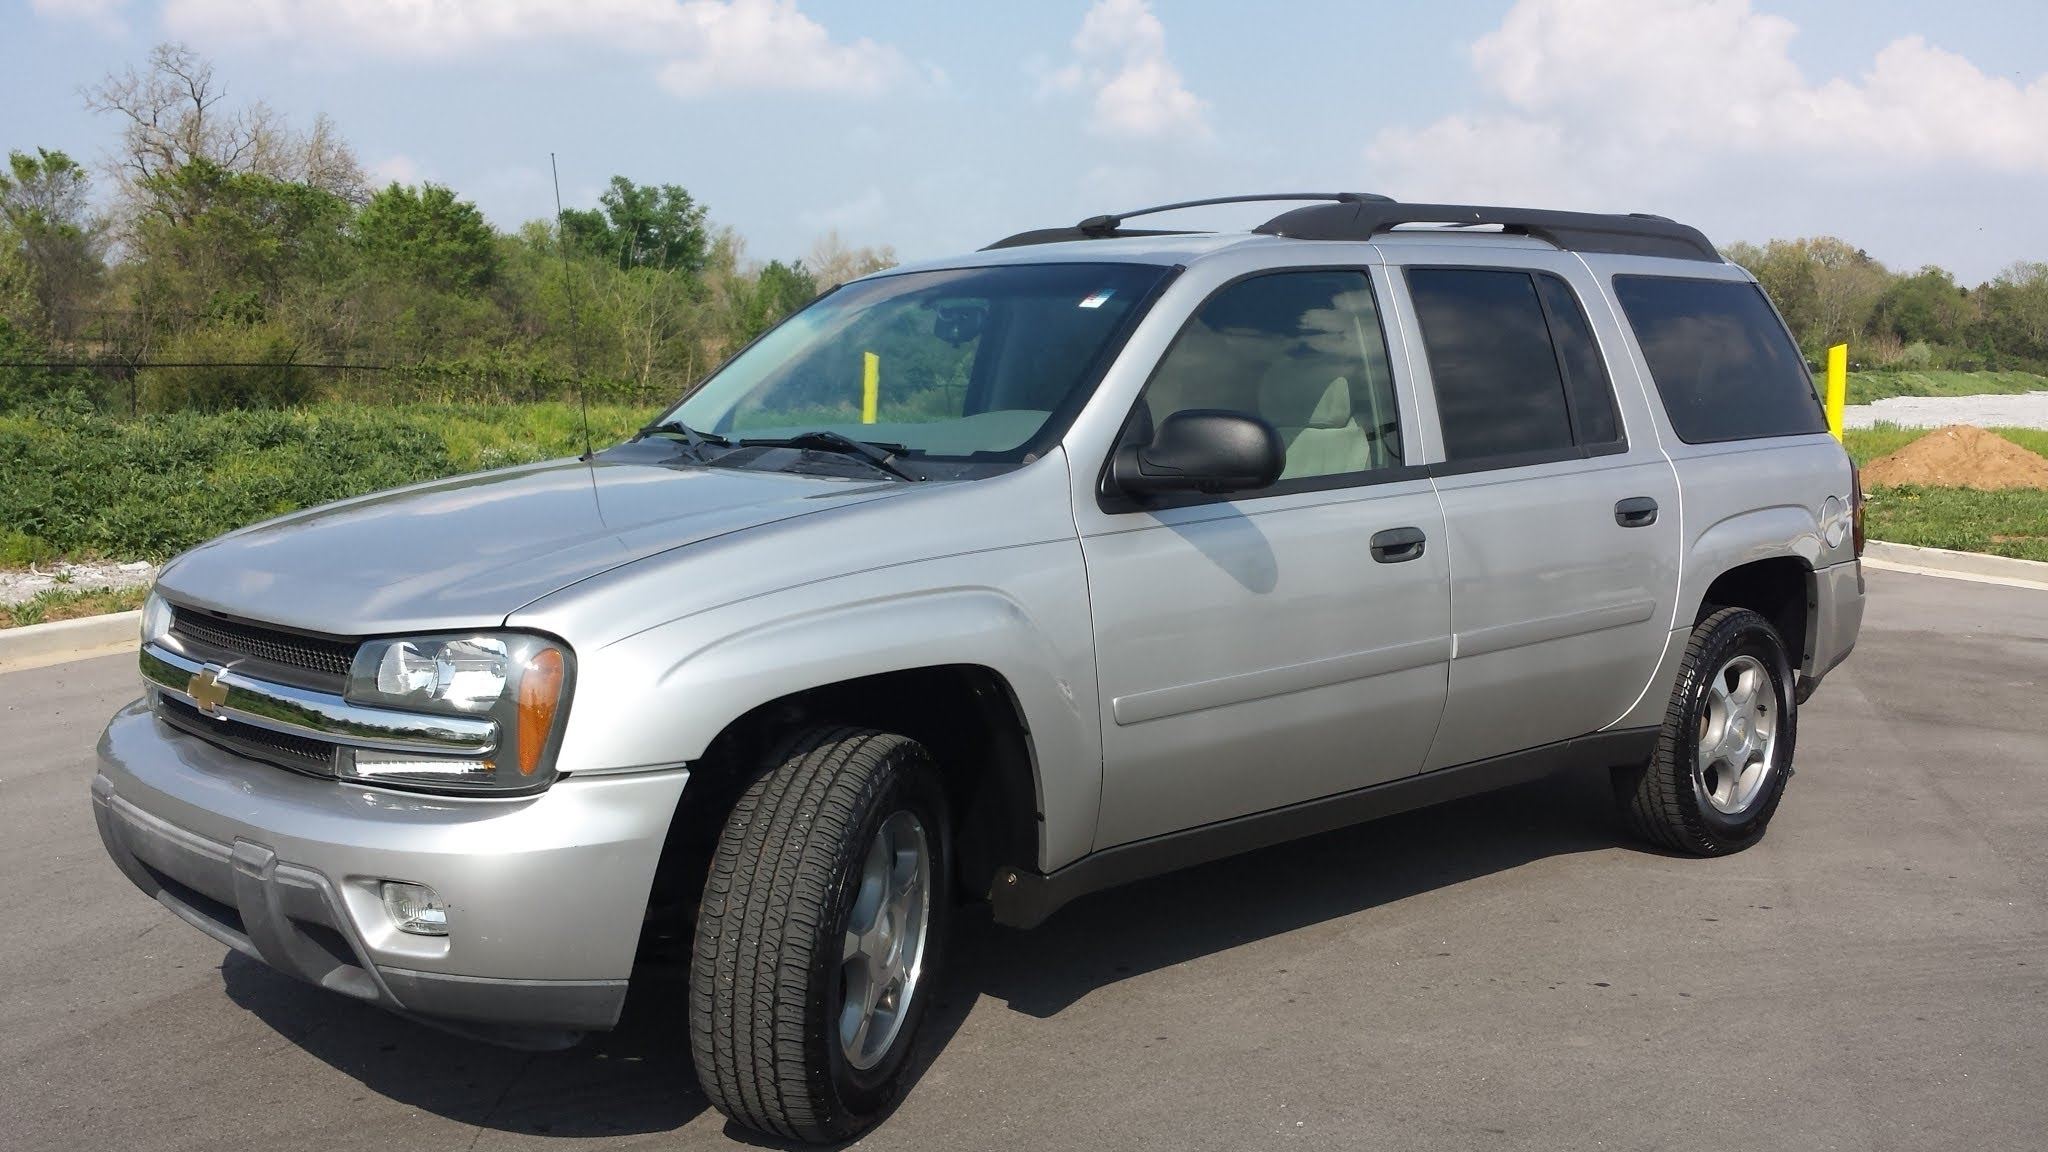 2006 Chevrolet Trailblazer #20